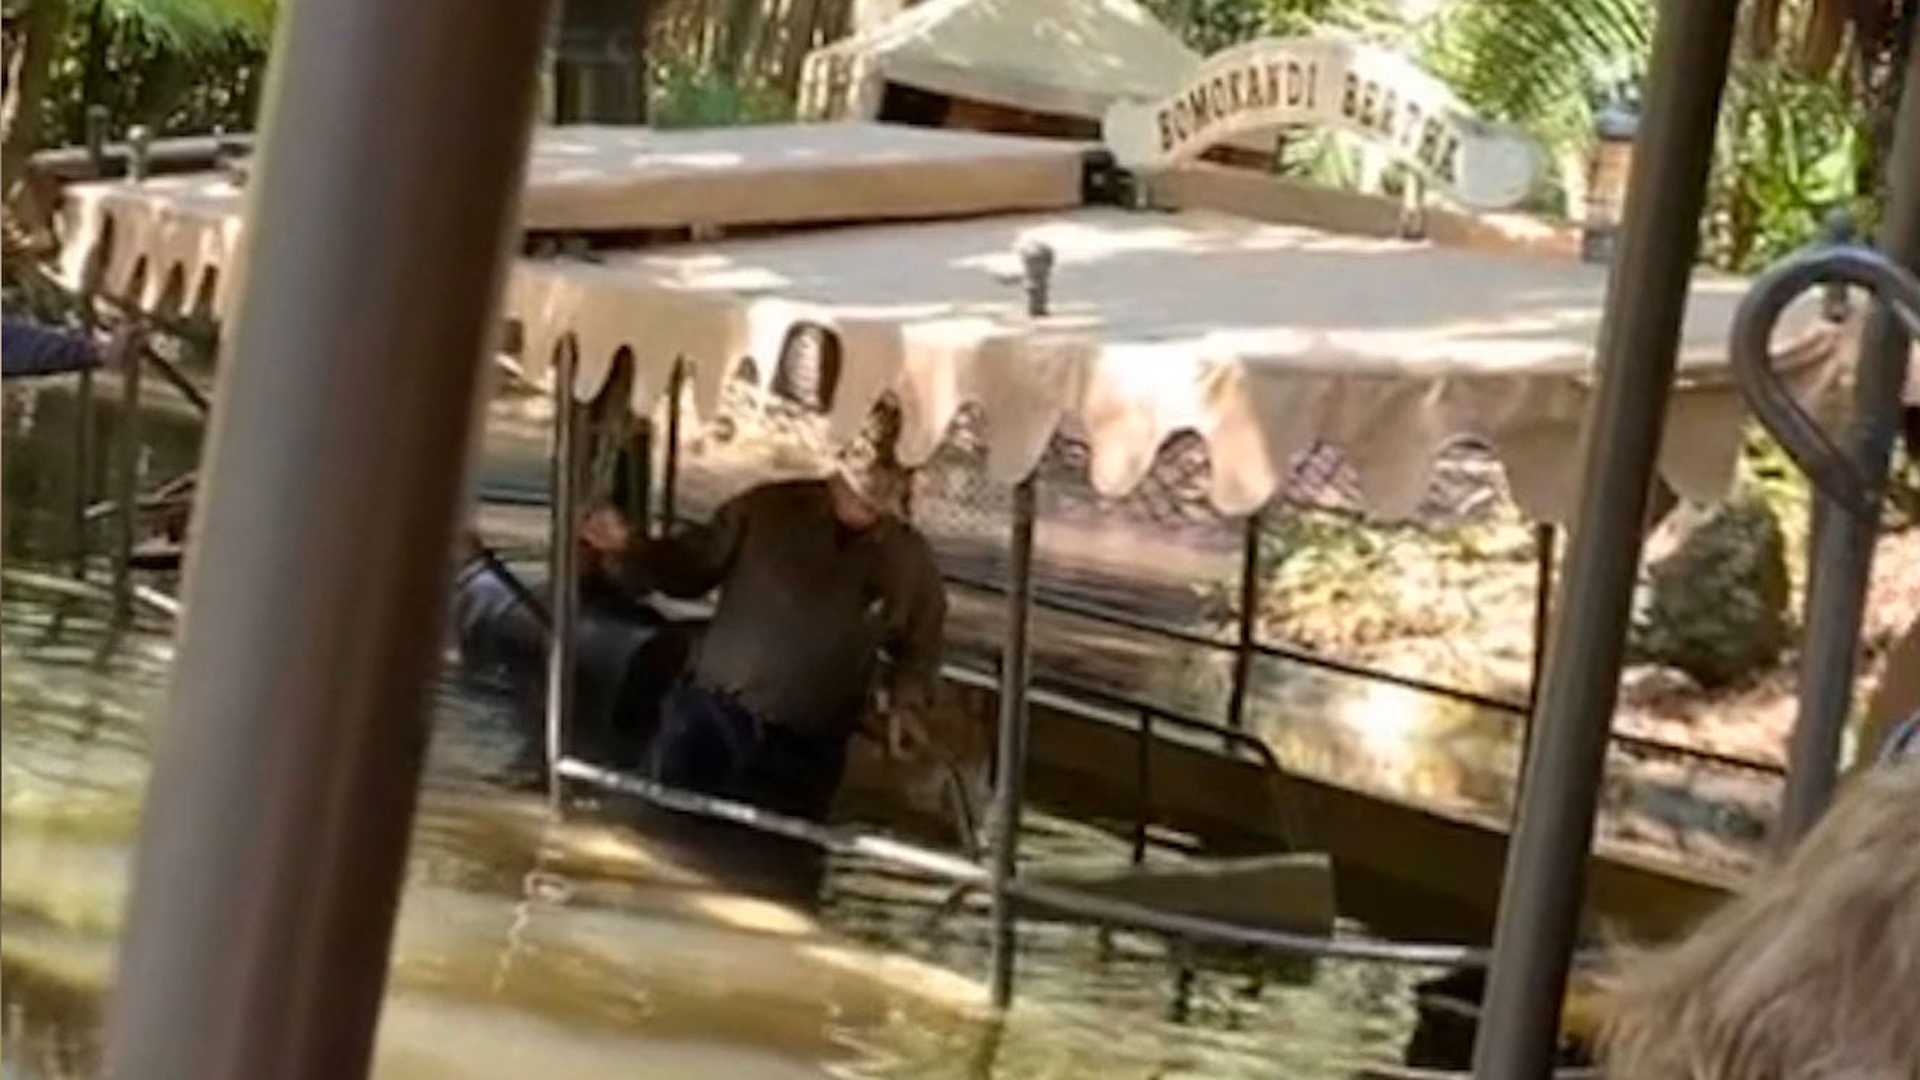 A jungle cruise boat at Disney World took on water on Feb. 27, 2020. (Credit: Matthew Vince/Twitter)